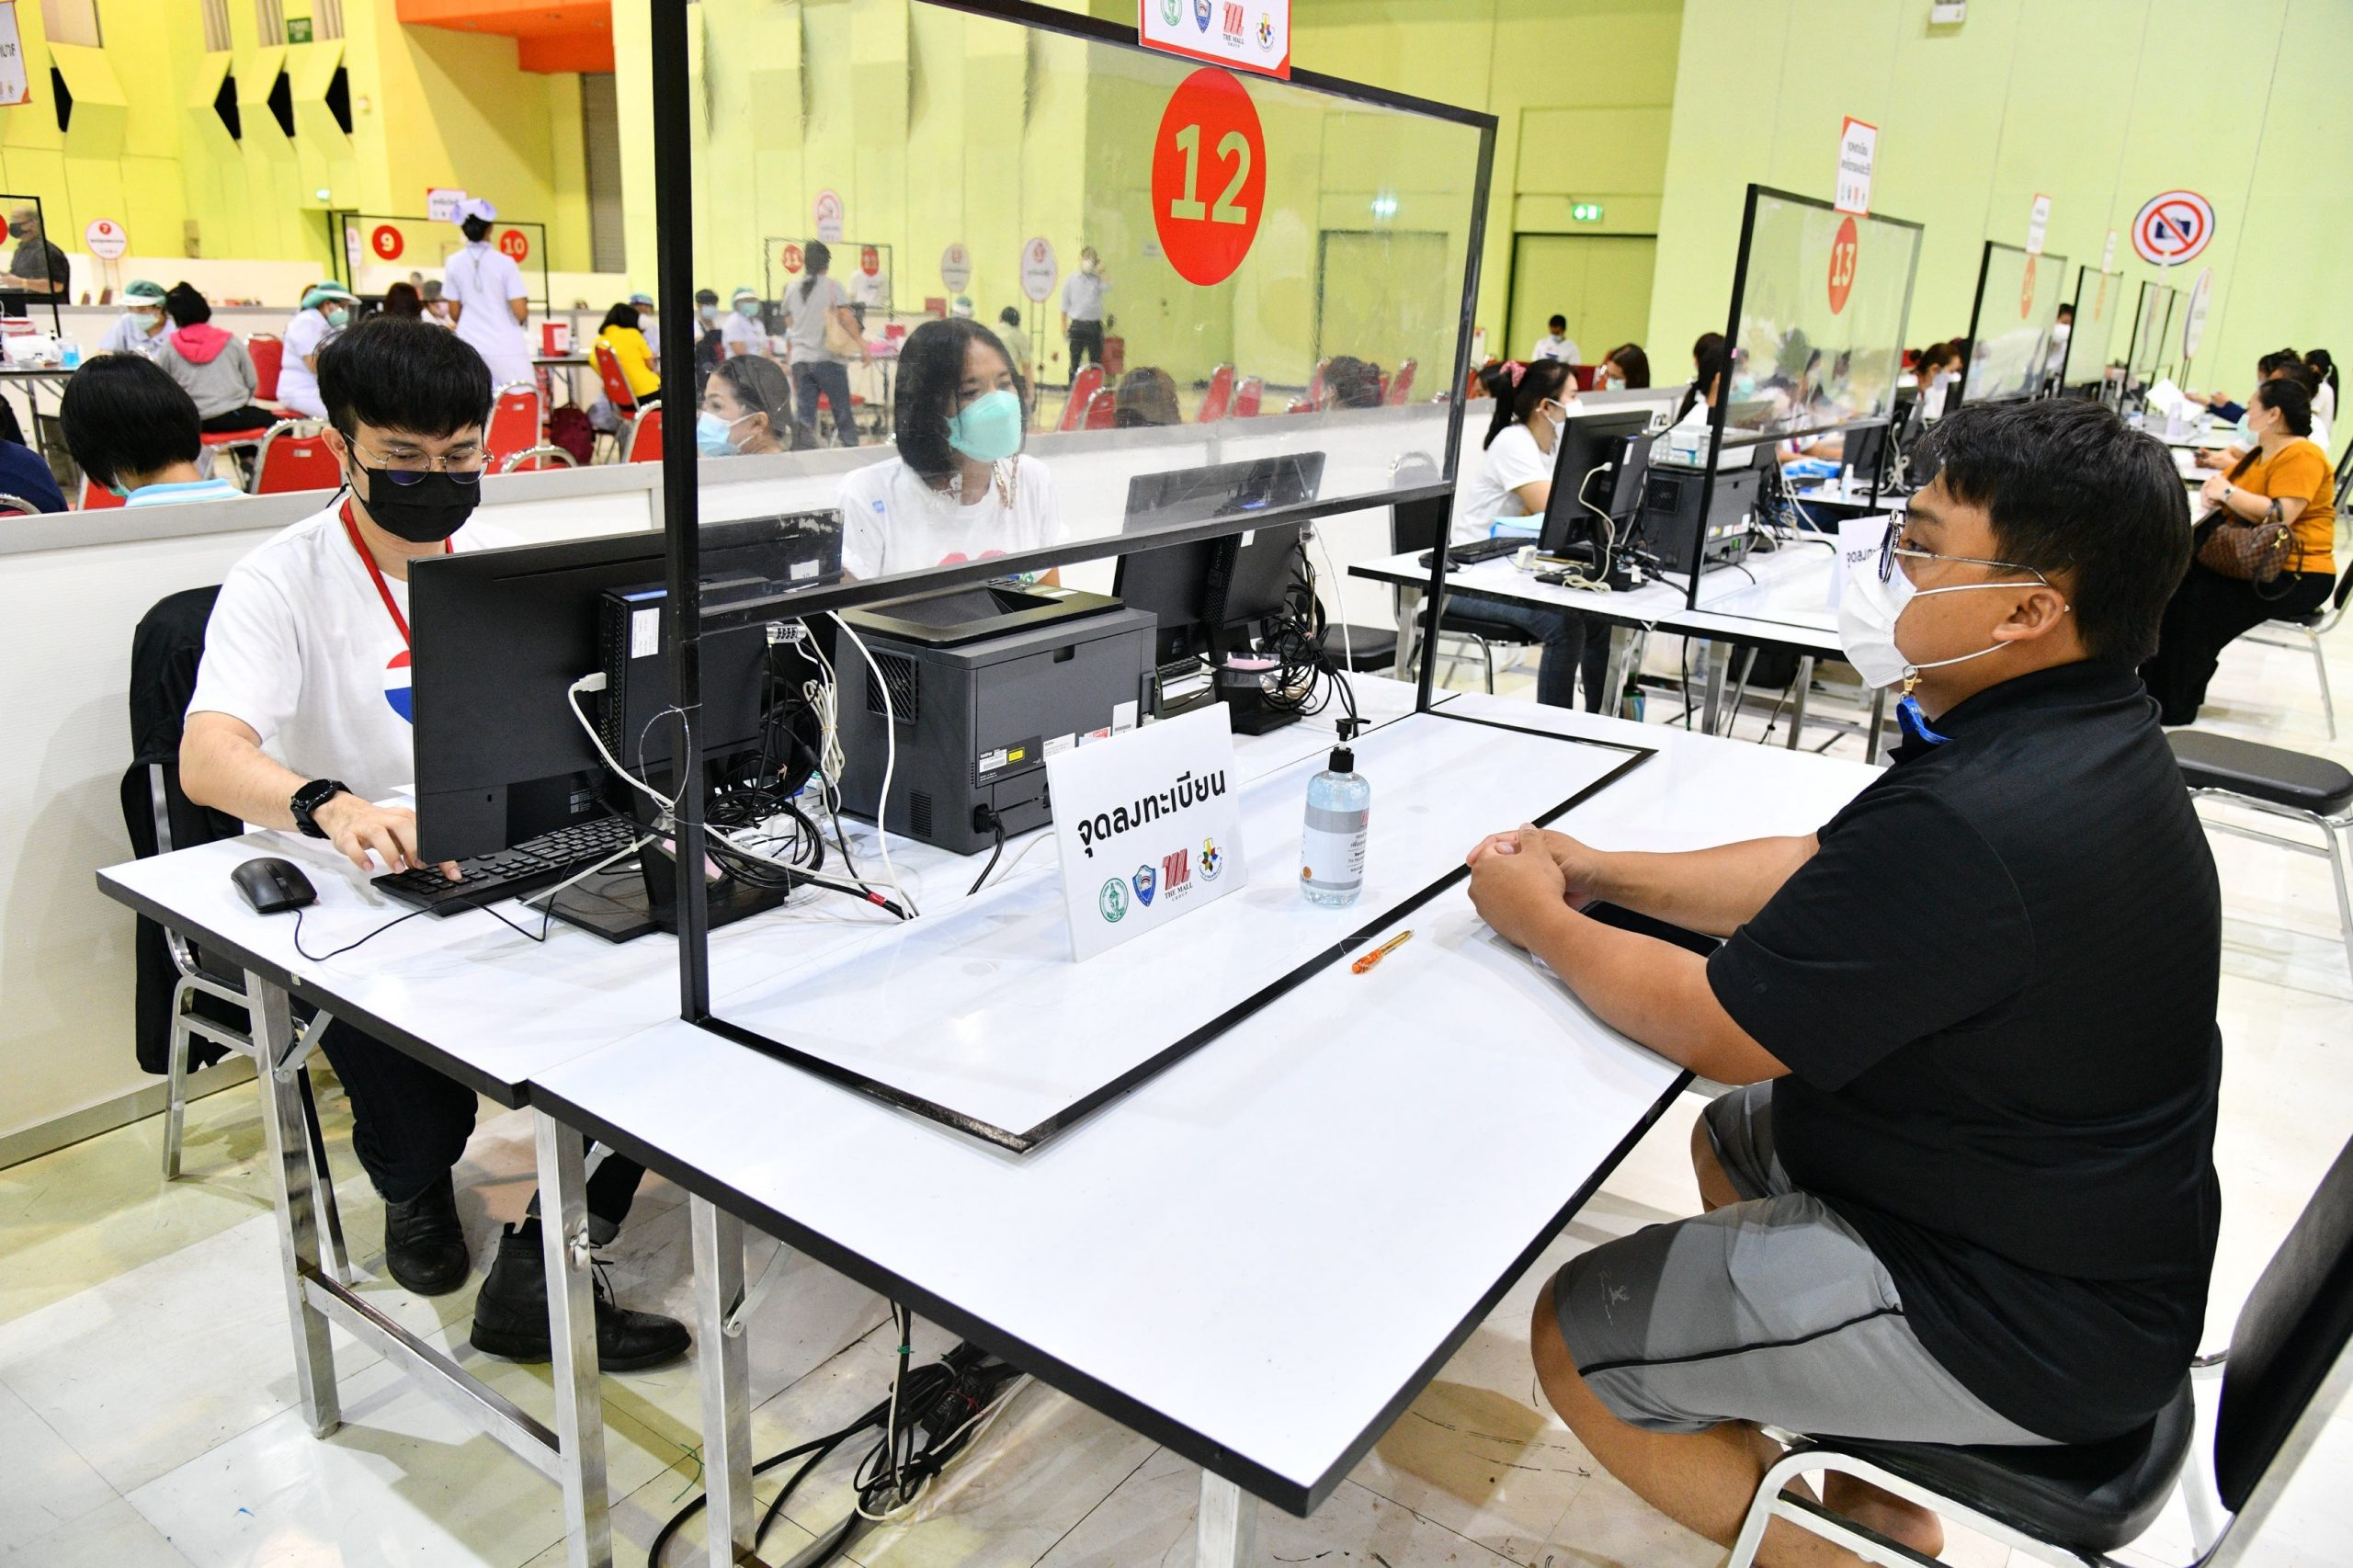 Thailand's mass vaccination drive stutters off the start line with more hurdles ahead